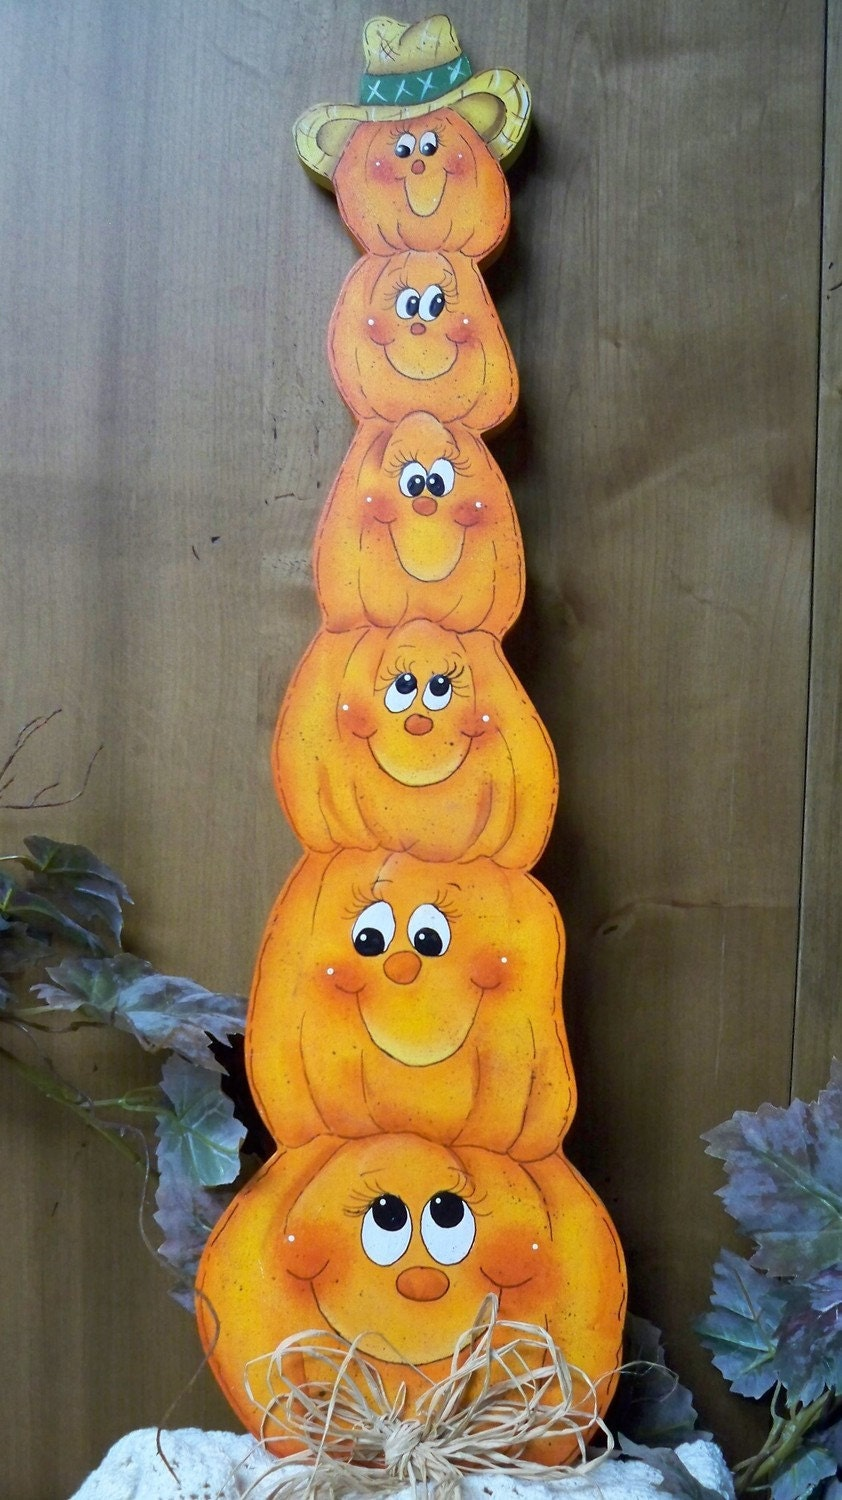 Painted Wooden Pumpkins For Halloween Decorations By